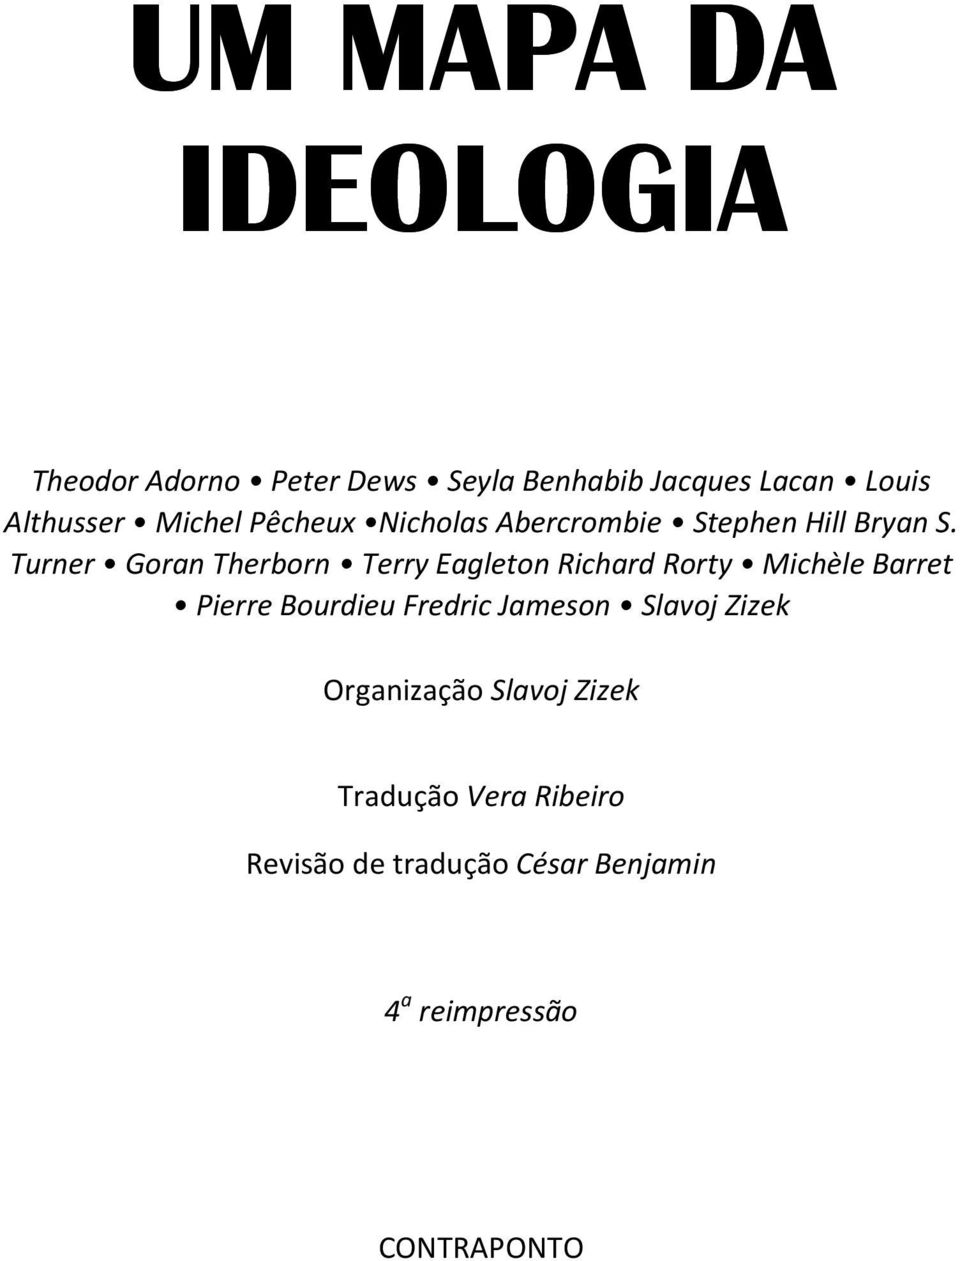 Turner Goran Therborn Terry Eagleton Richard Rorty Michèle Barret Pierre Bourdieu Fredric